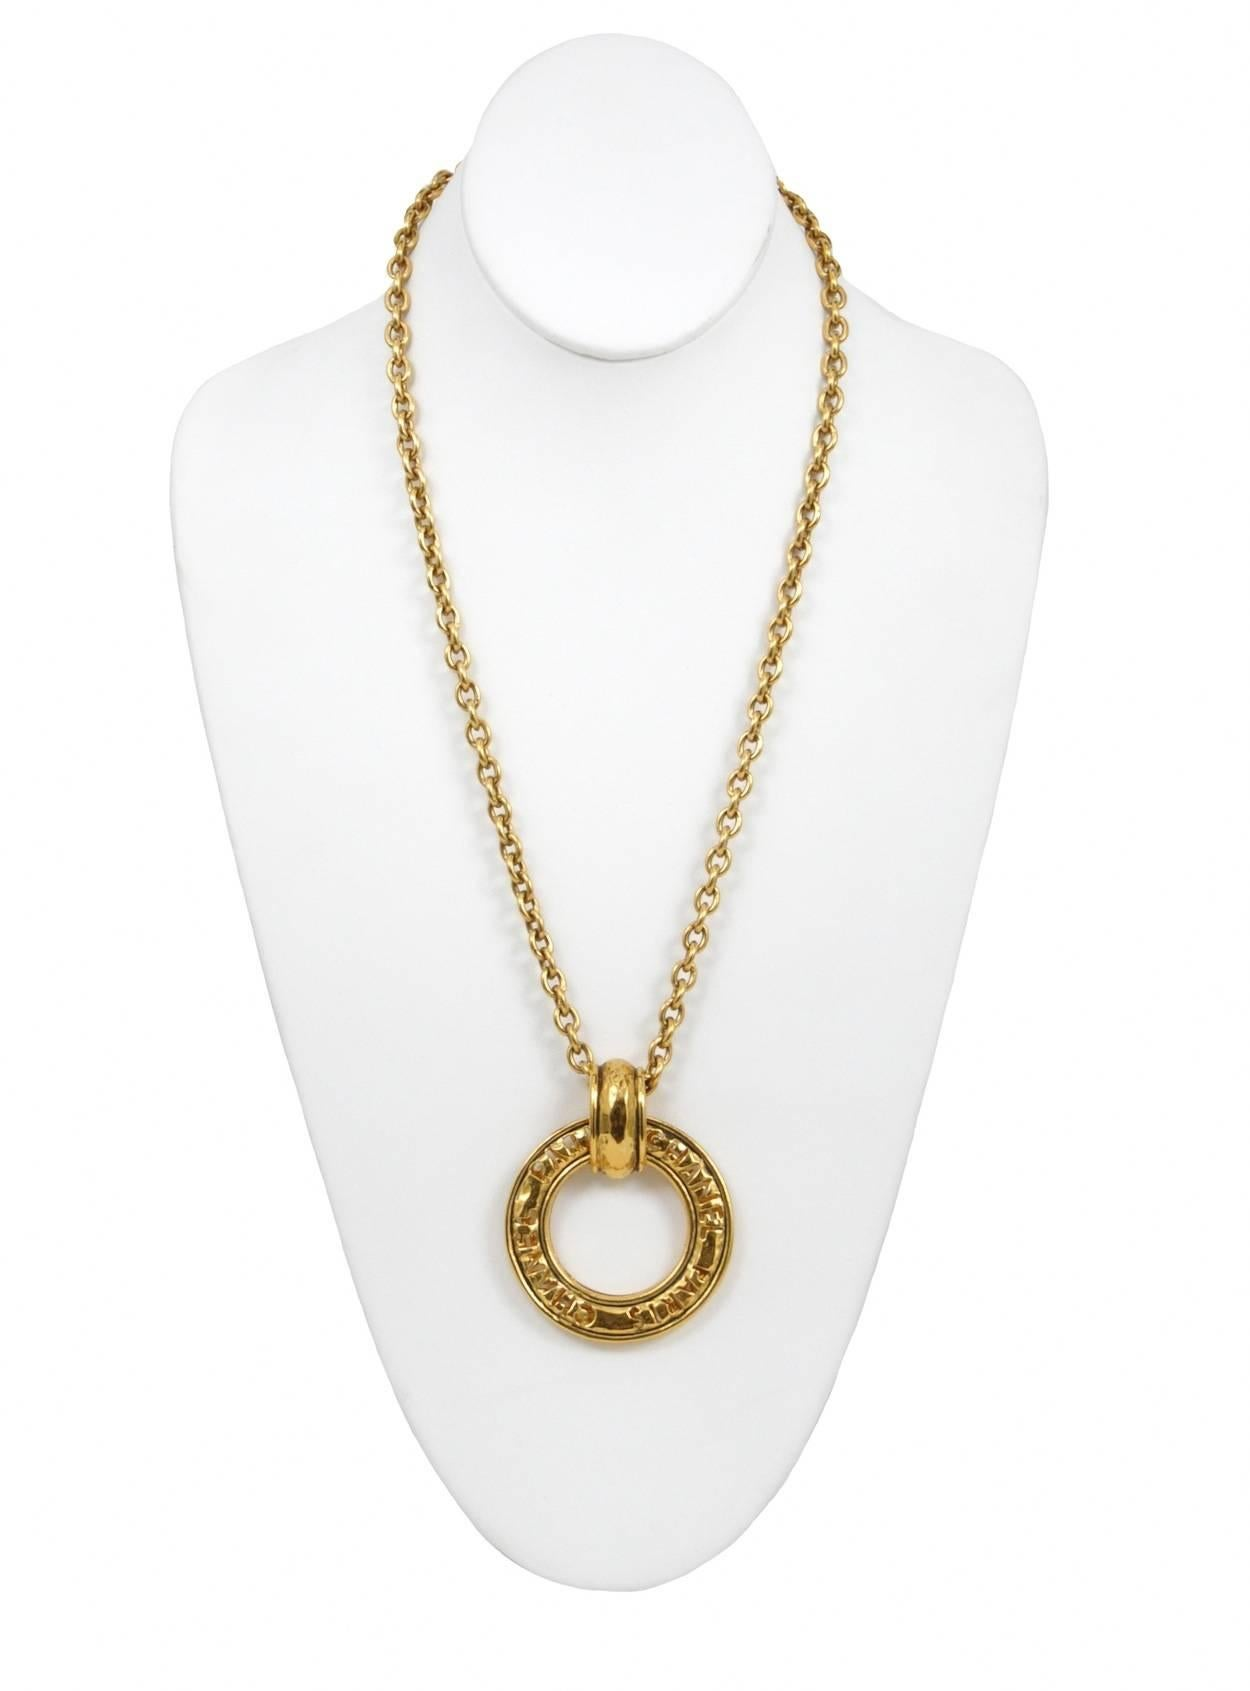 547be106a93 Chanel Gold Logo Ring Necklace For Sale at 1stdibs